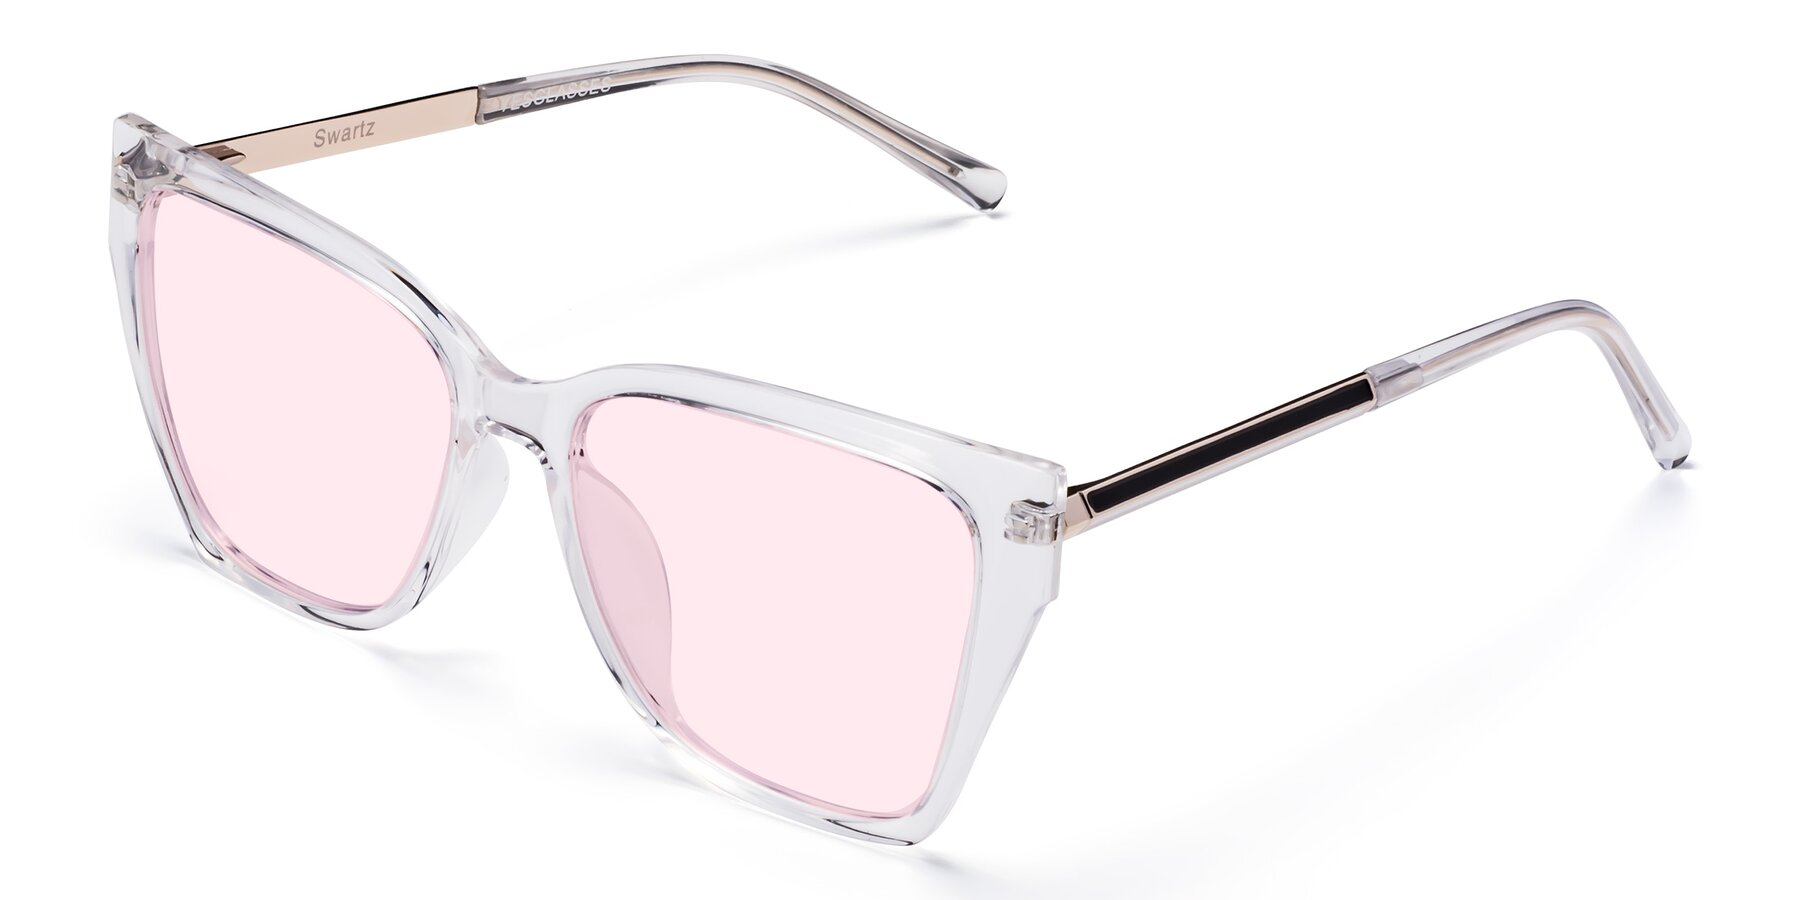 Angle of Swartz in Clear with Light Pink Tinted Lenses